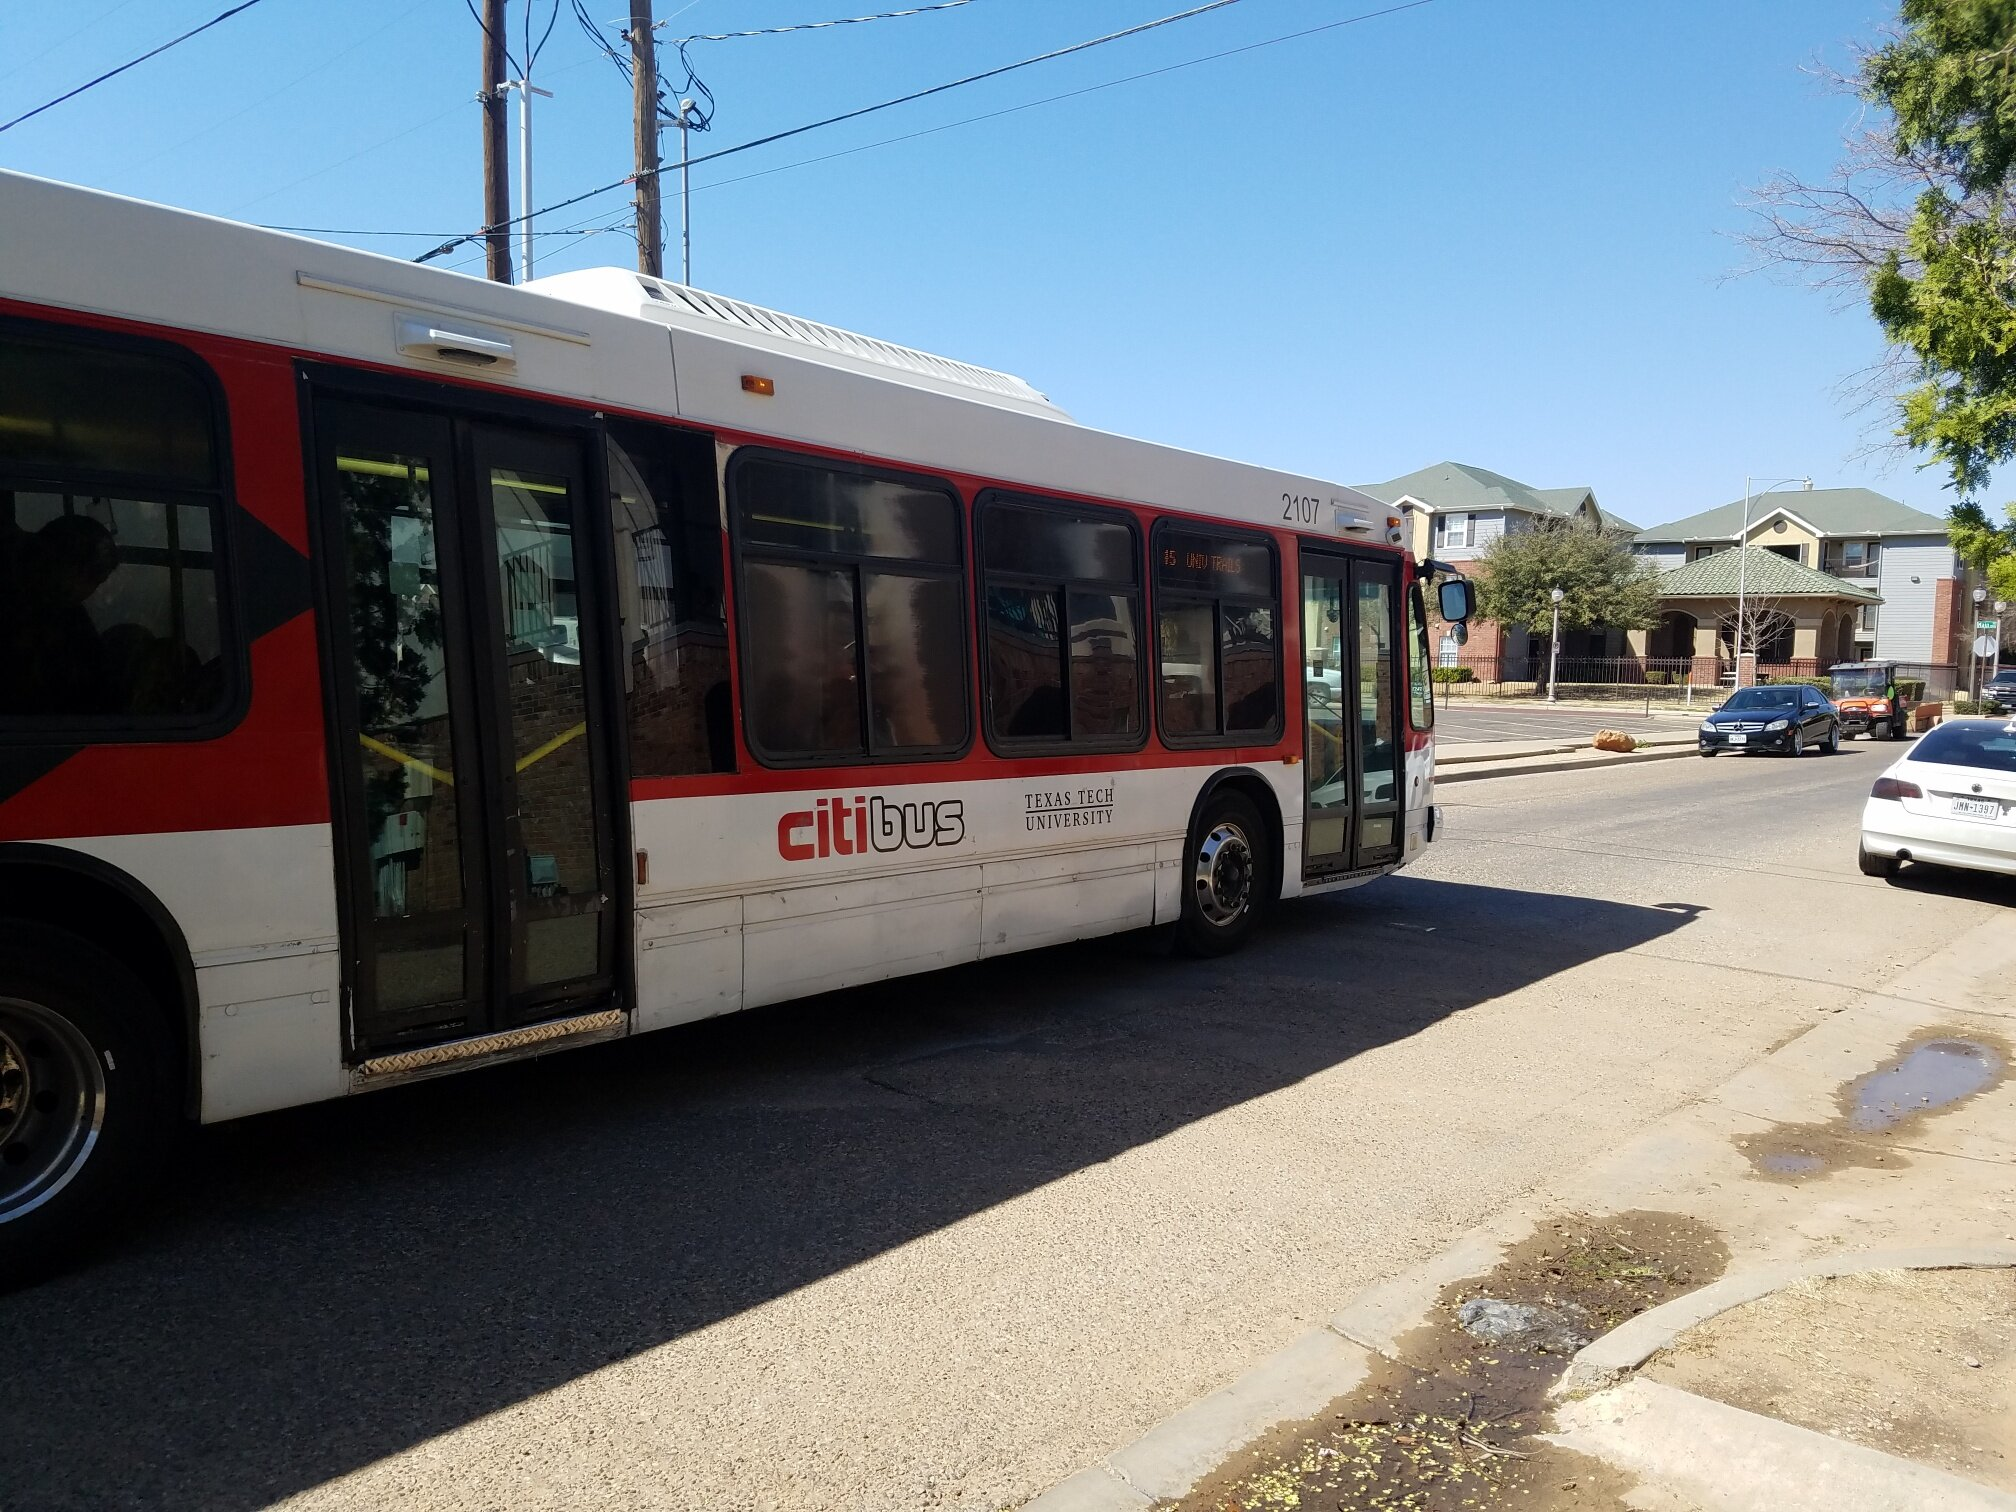 Lubbock, TX - Citibus Comprehensive Operational AnalysisThe City of Lubbock/Citibus has started work on an important project called the Comprehensive Operational Analysis (COA) of its current local fixed-route bus, complementary paratransit services, and demand response services. This analysis will lead to recommendations for program and service design improvements for overall system efficiency and operational effectiveness.